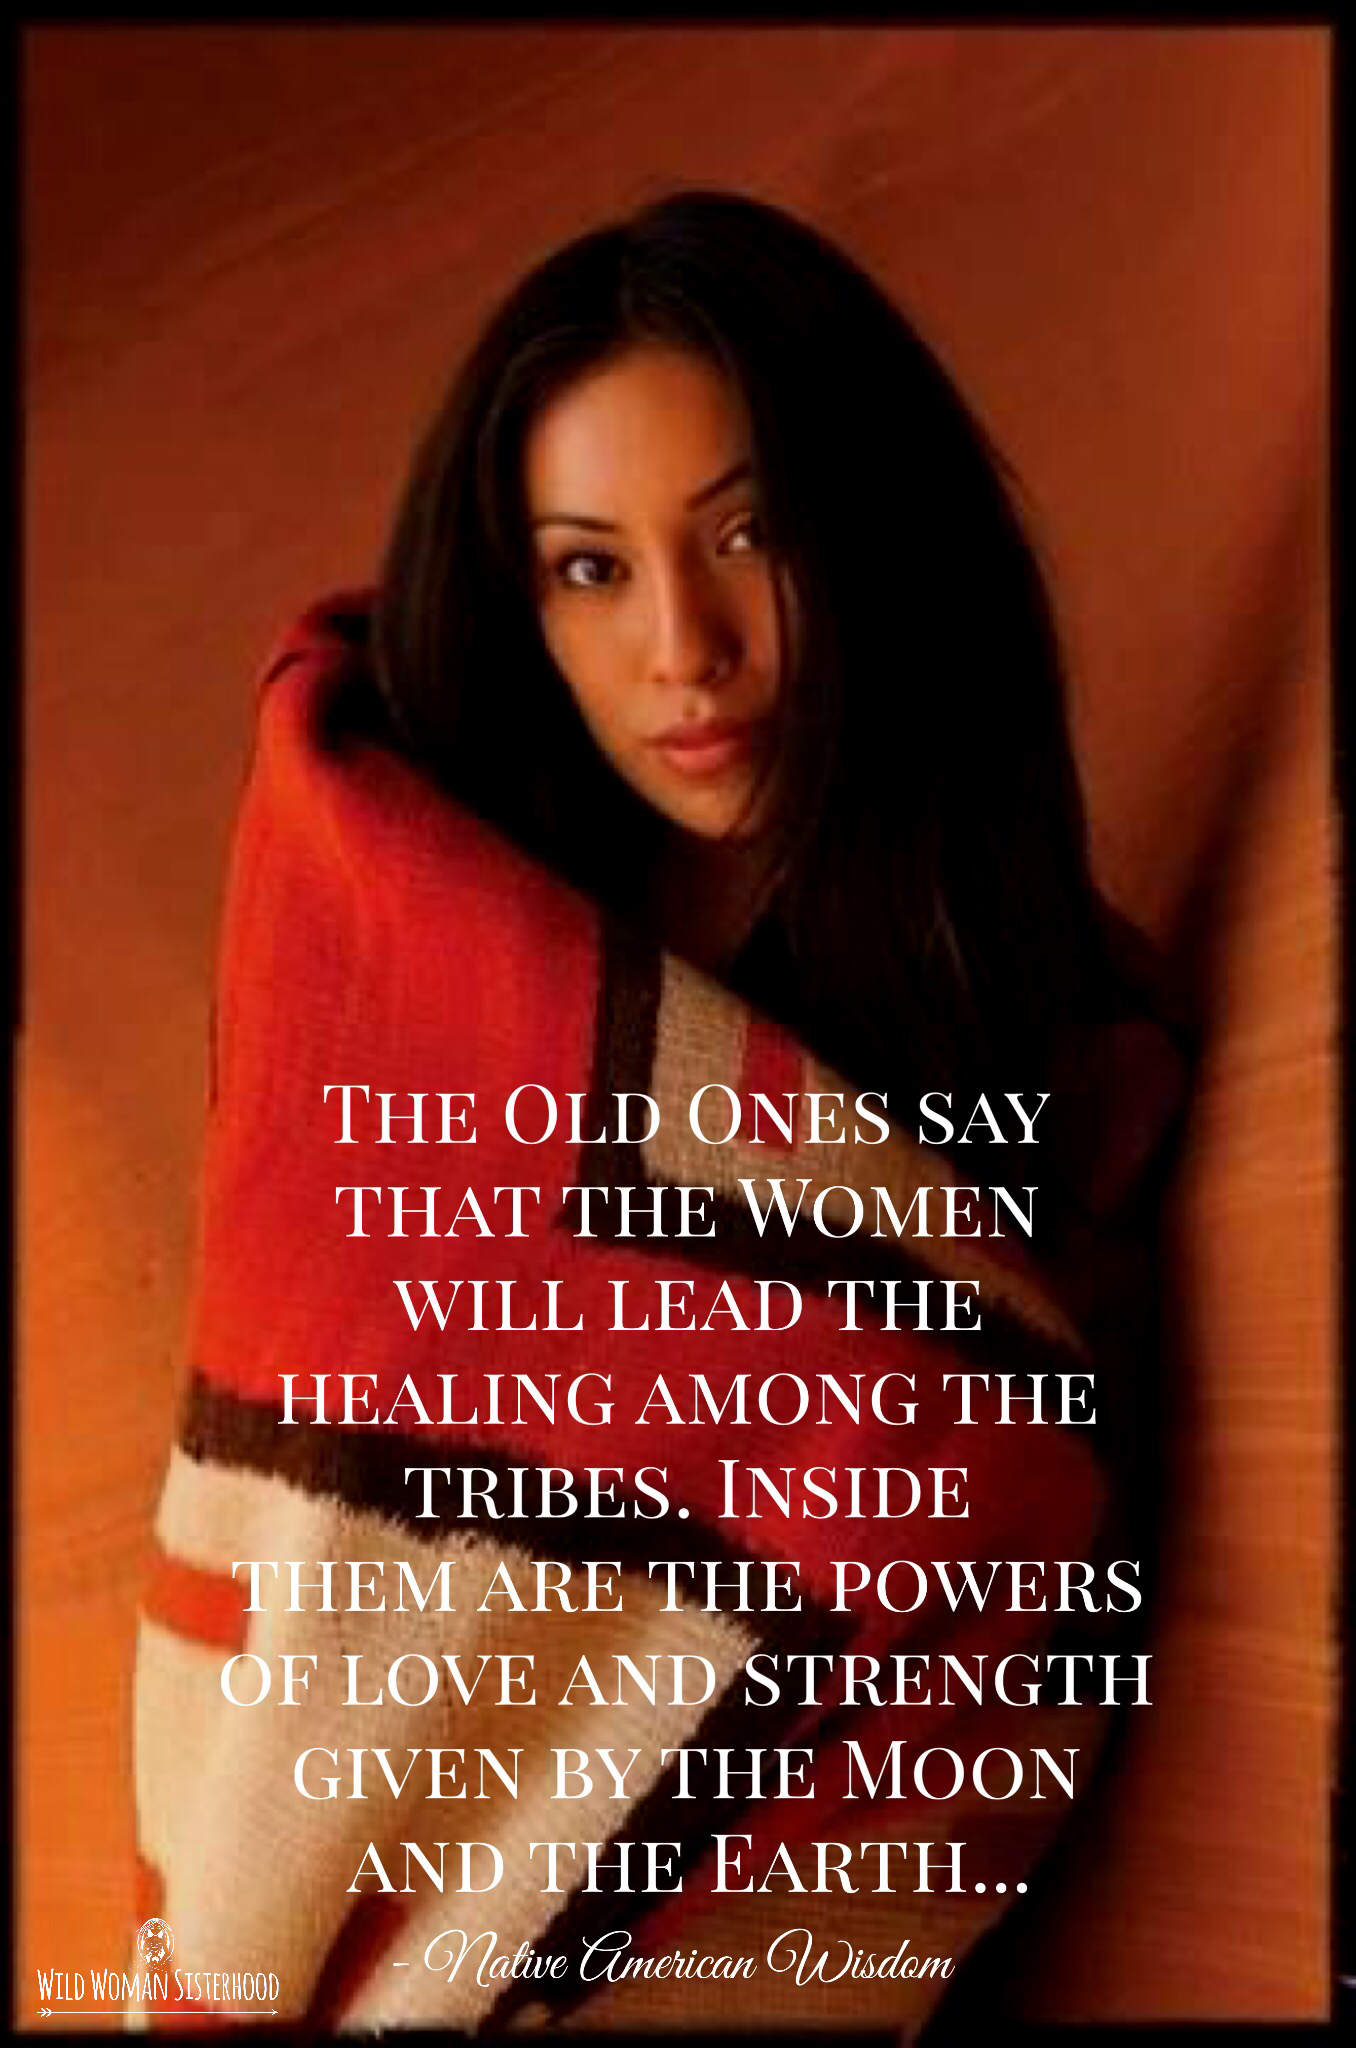 The old ones say that the Women will lead the healing